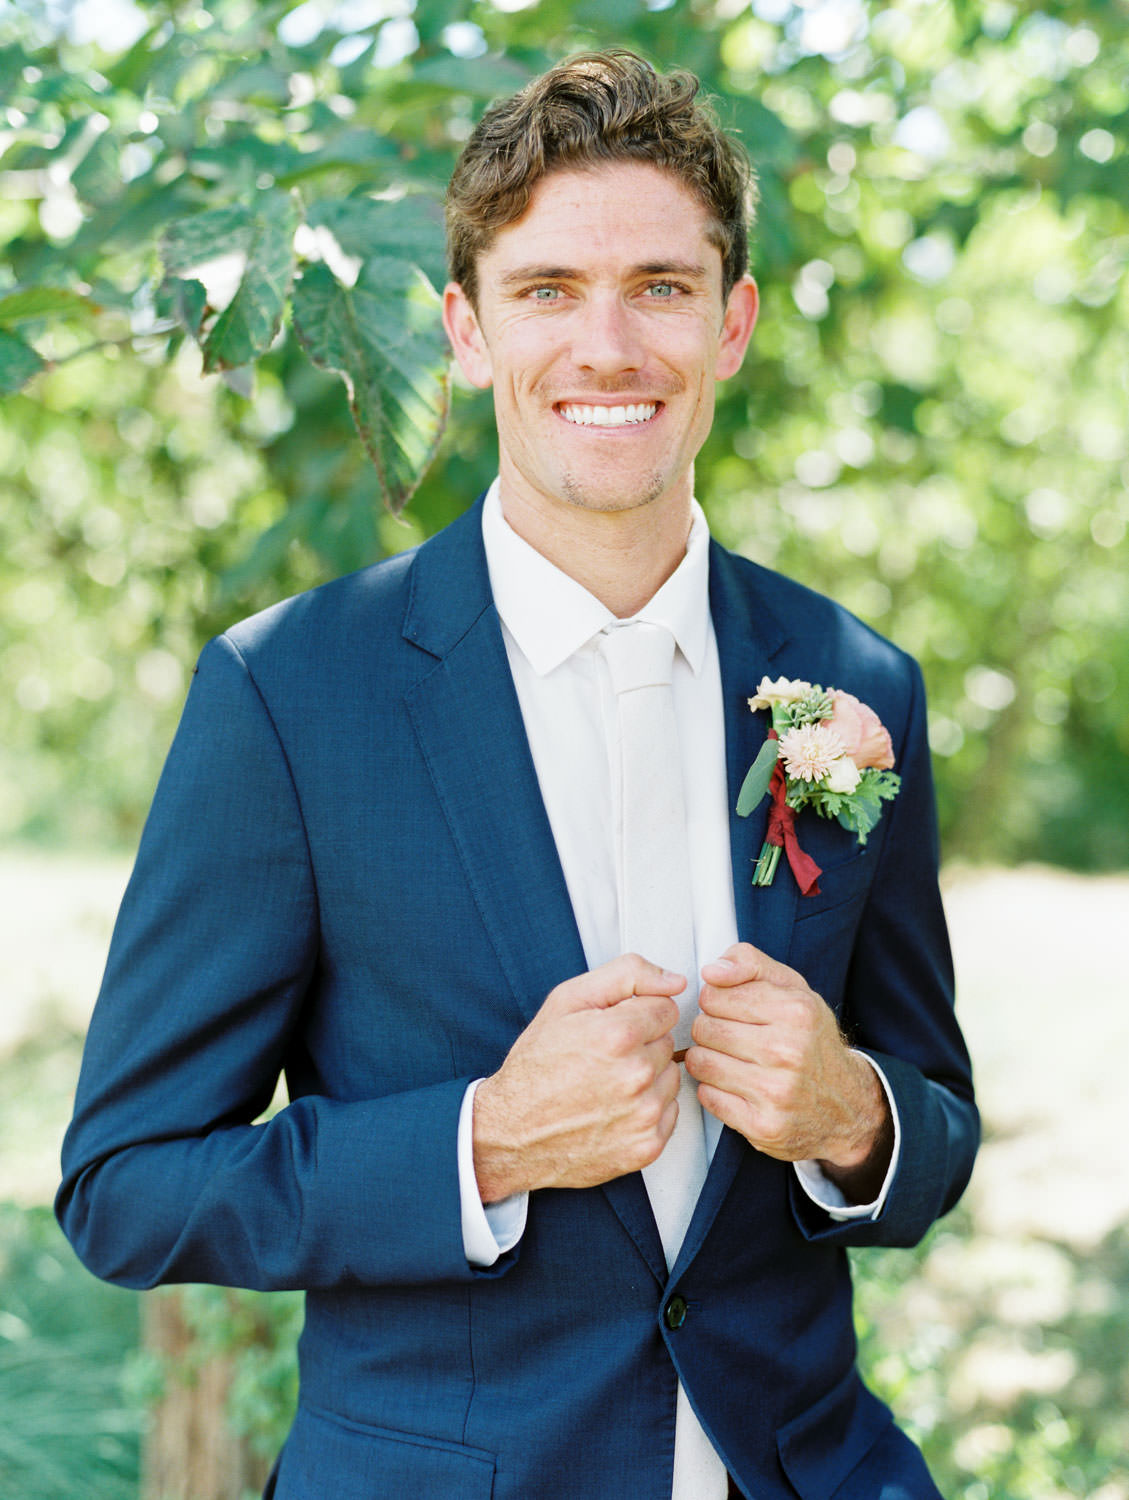 Groom in navy linen suit with ivory tie and large boutonniere with peach and green flowers. Cavin Elizabeth Photography.